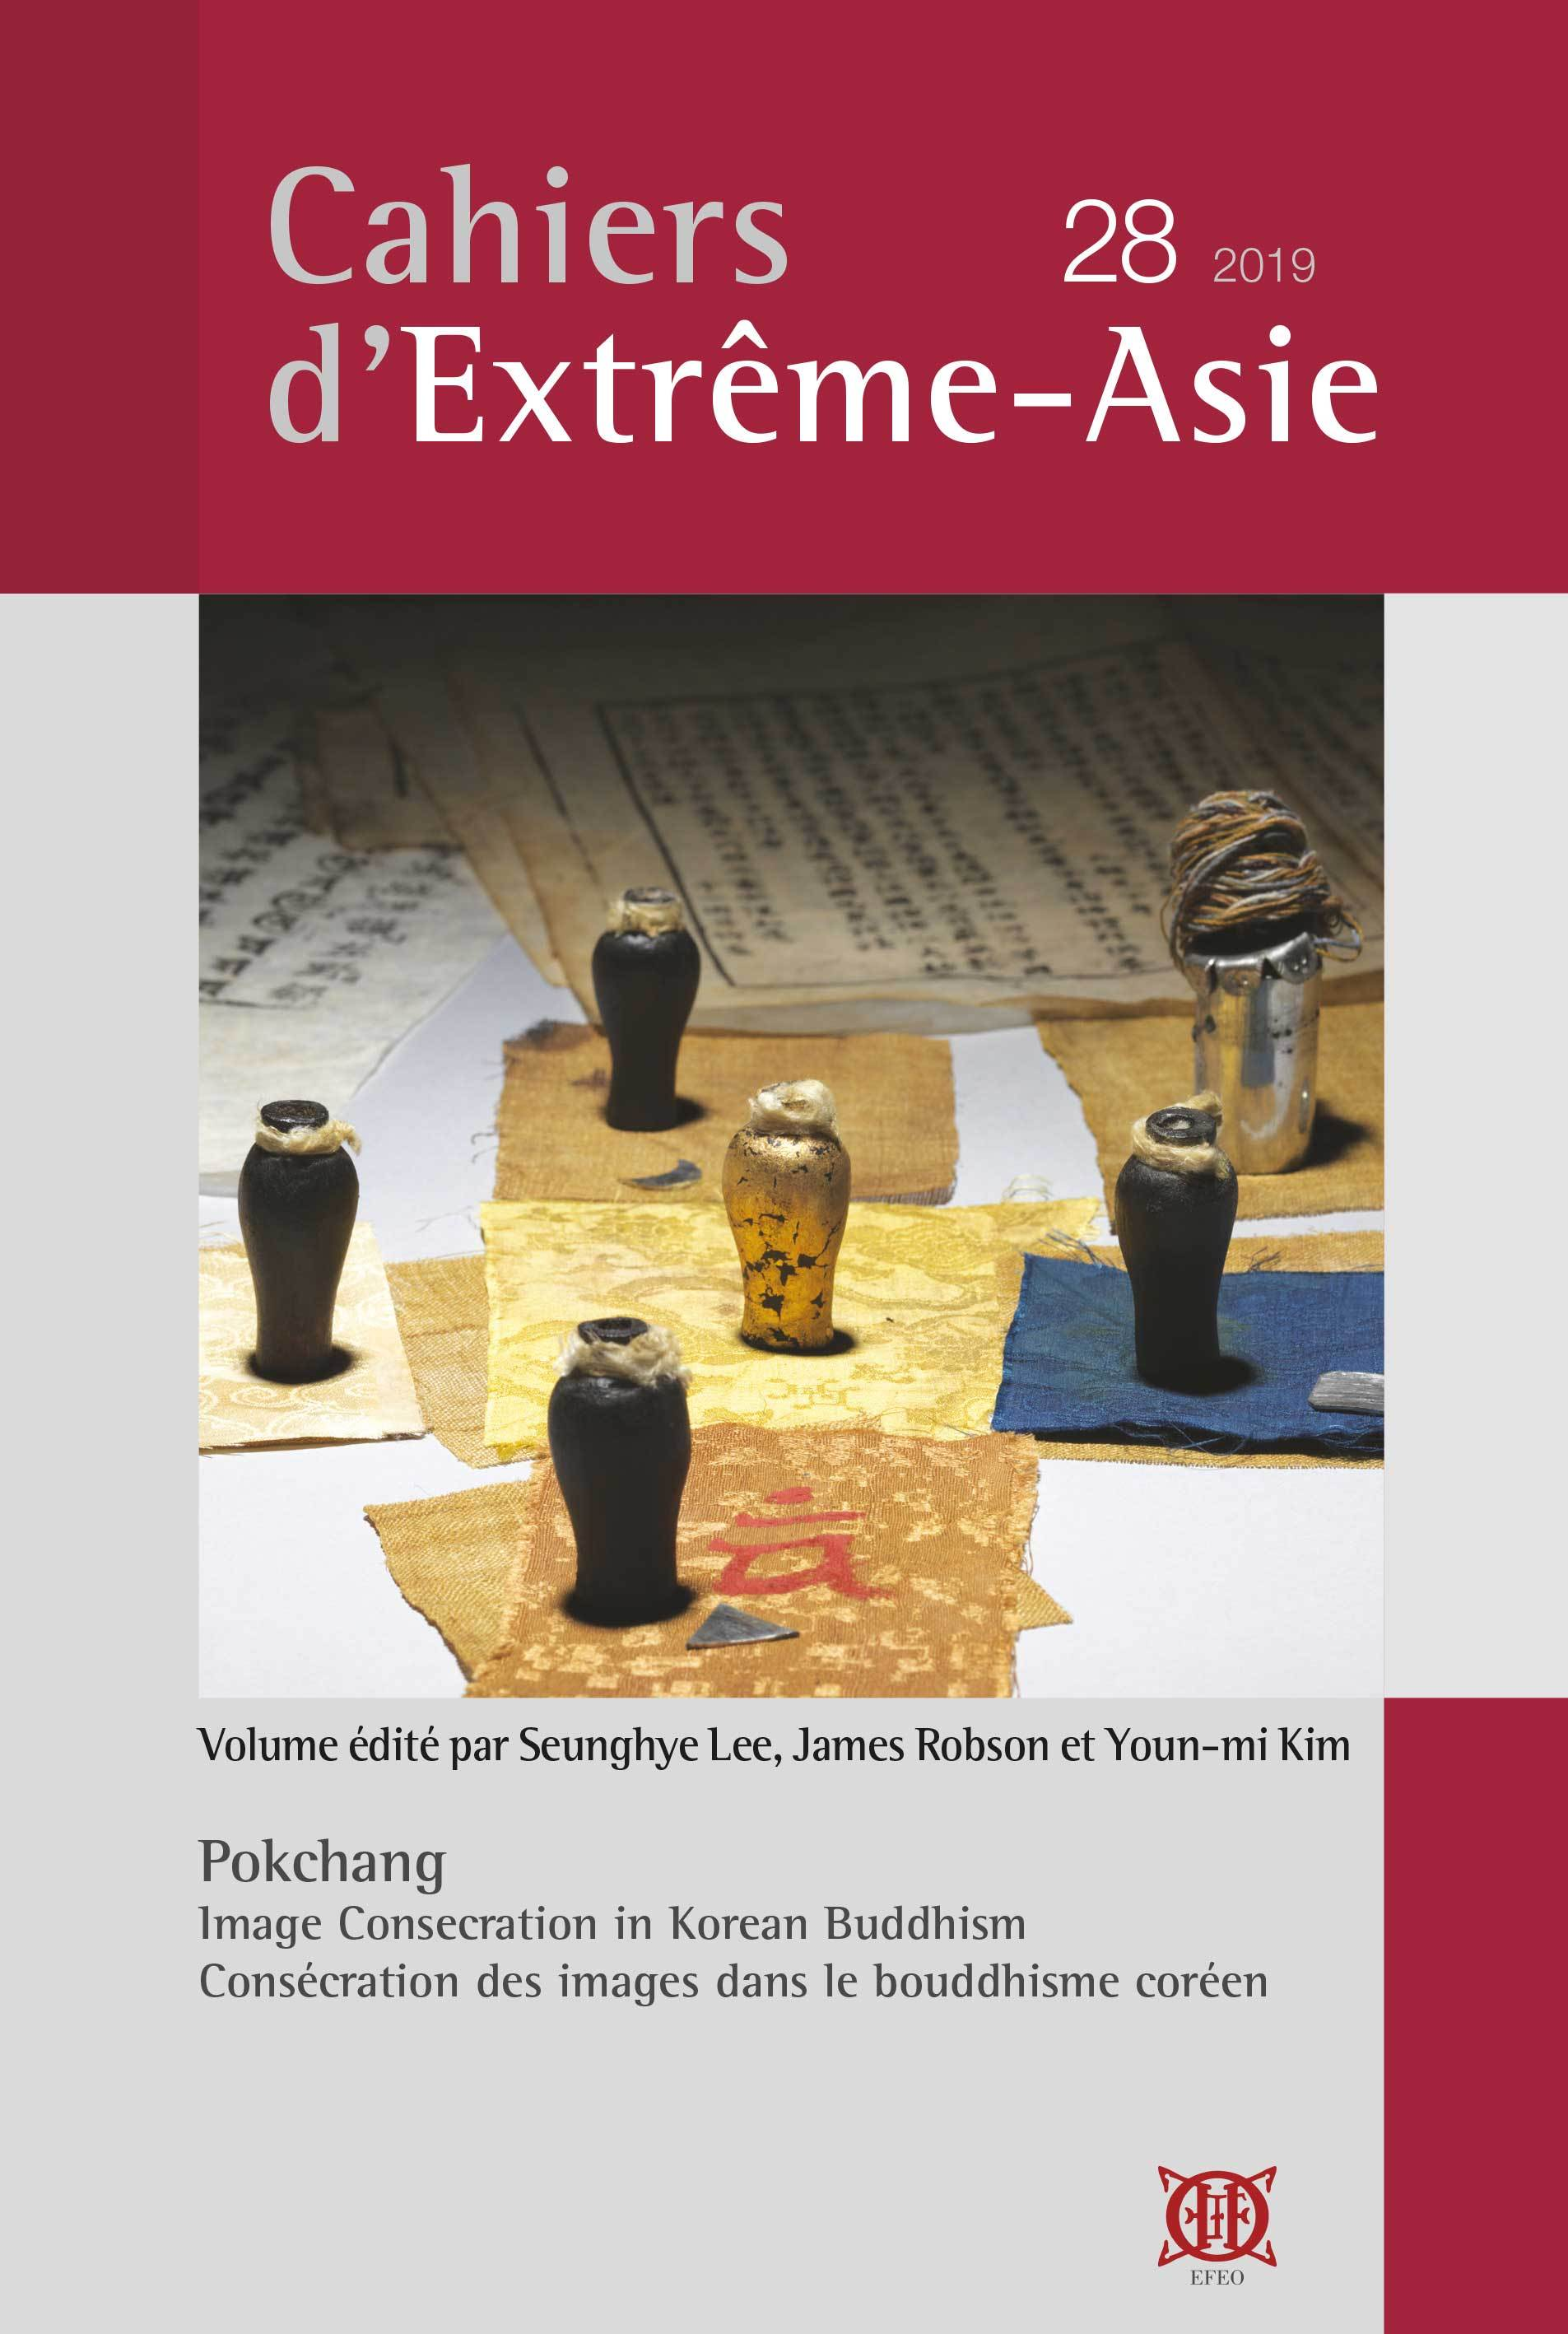 CAHIERS D EXTREME-ASIE, VOL. 28 (2019)